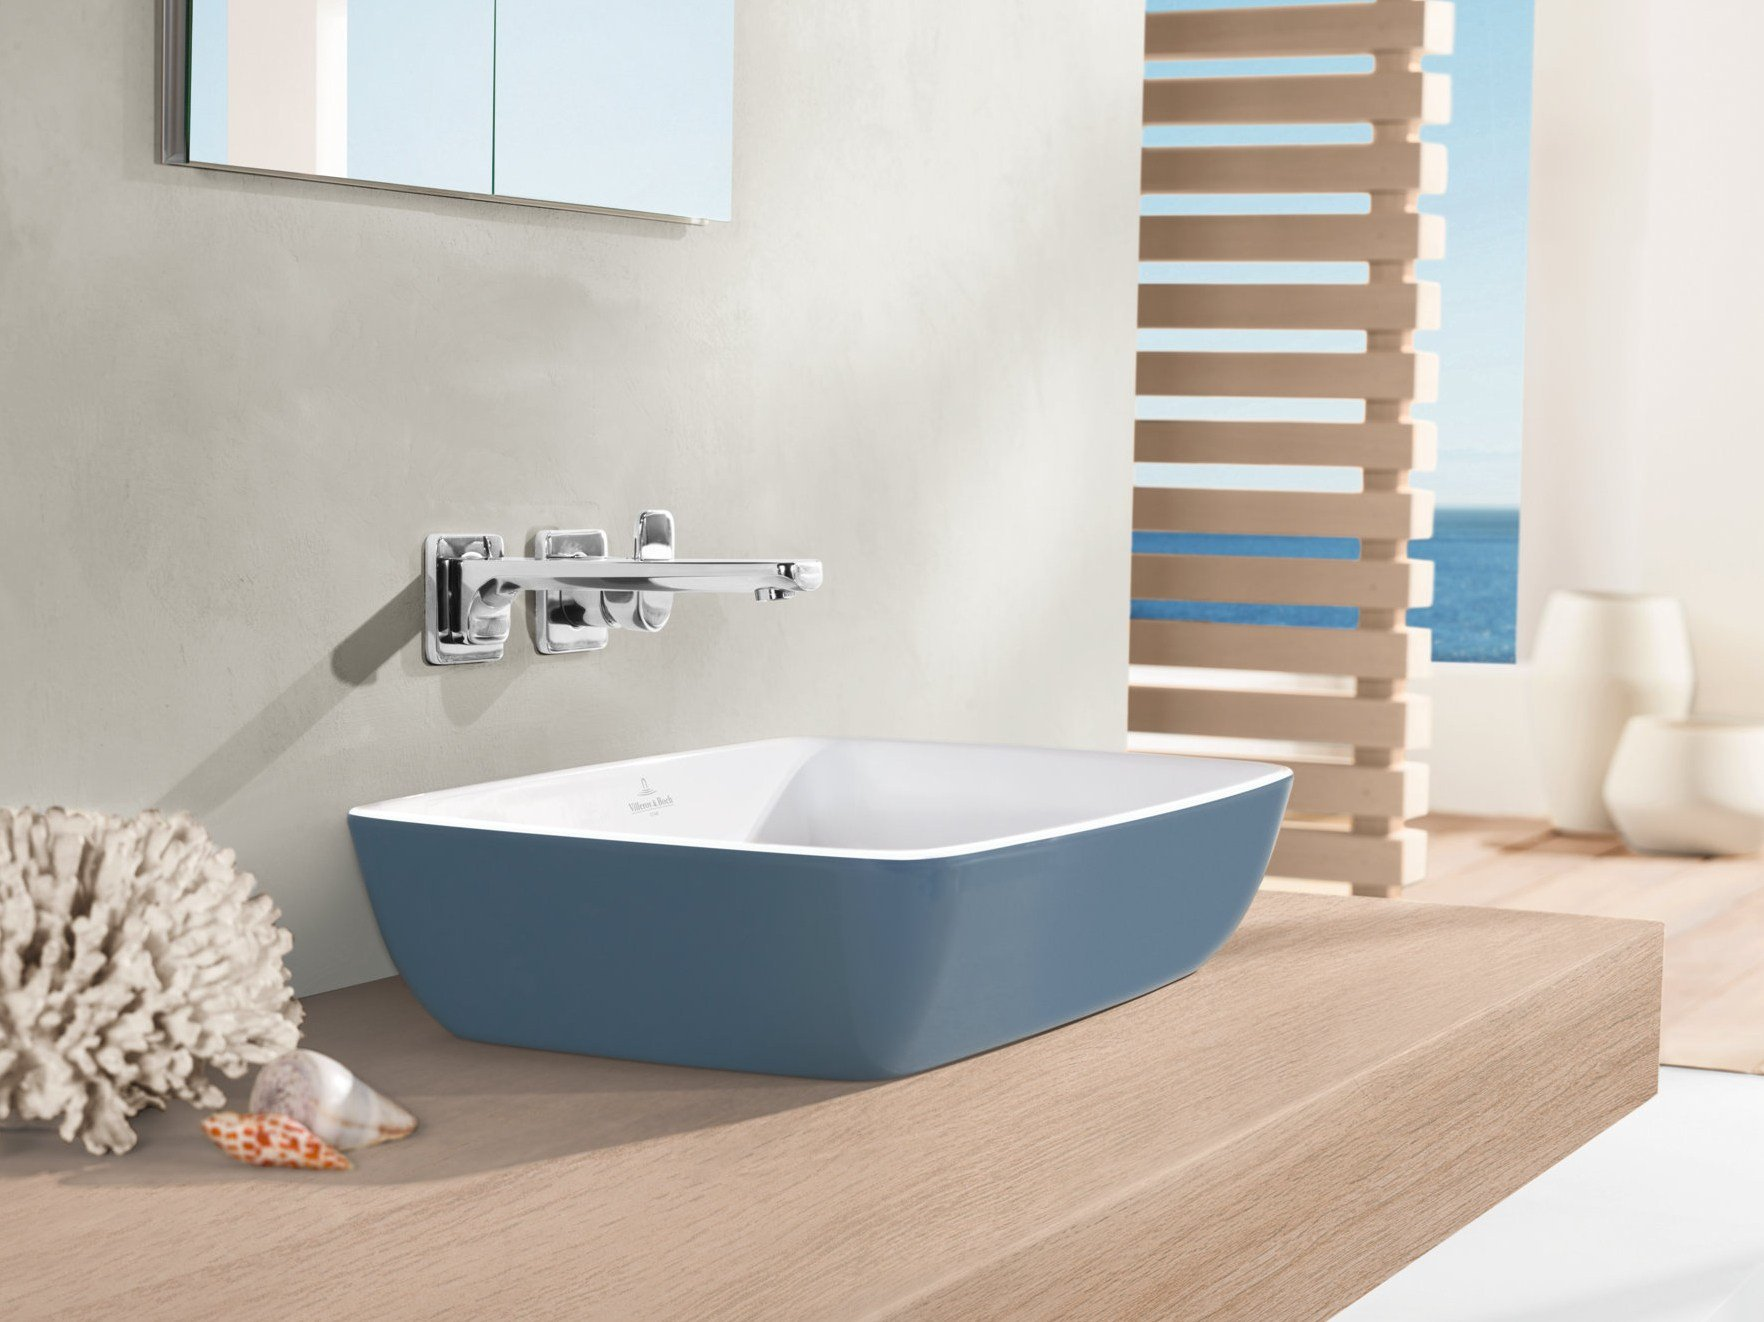 Villeroy and boch bathroom sink - Villeroy And Boch Bathroom Sink 59